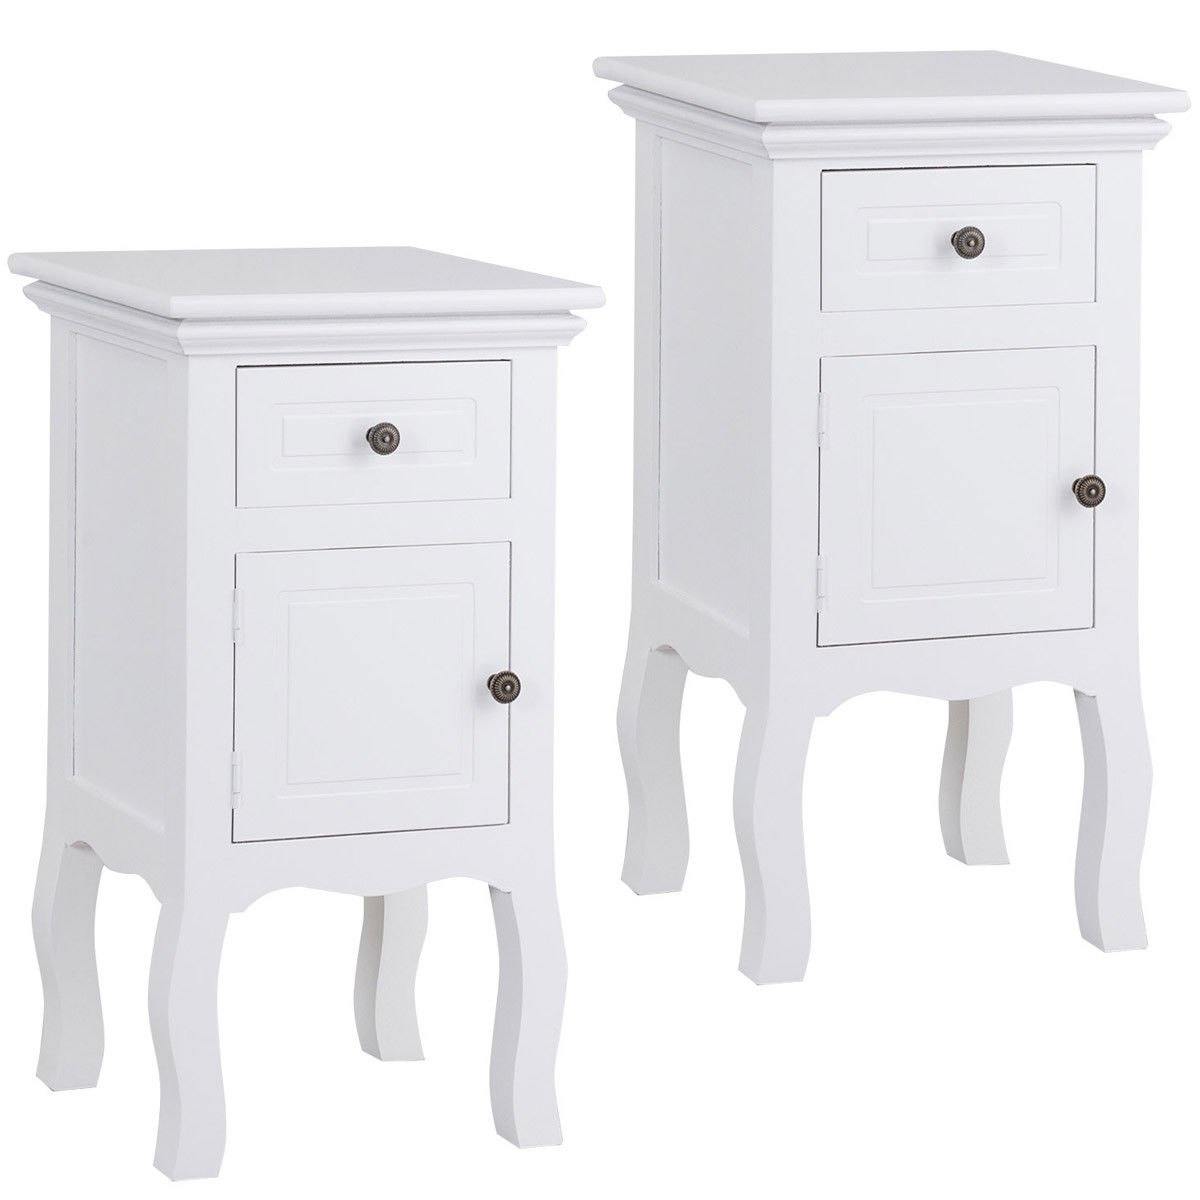 way white nightstand storage drawer and cabinet accent table with drawers wood end round small bedroom tables oval marble top coffee green furniture slim drop leaf tall dining